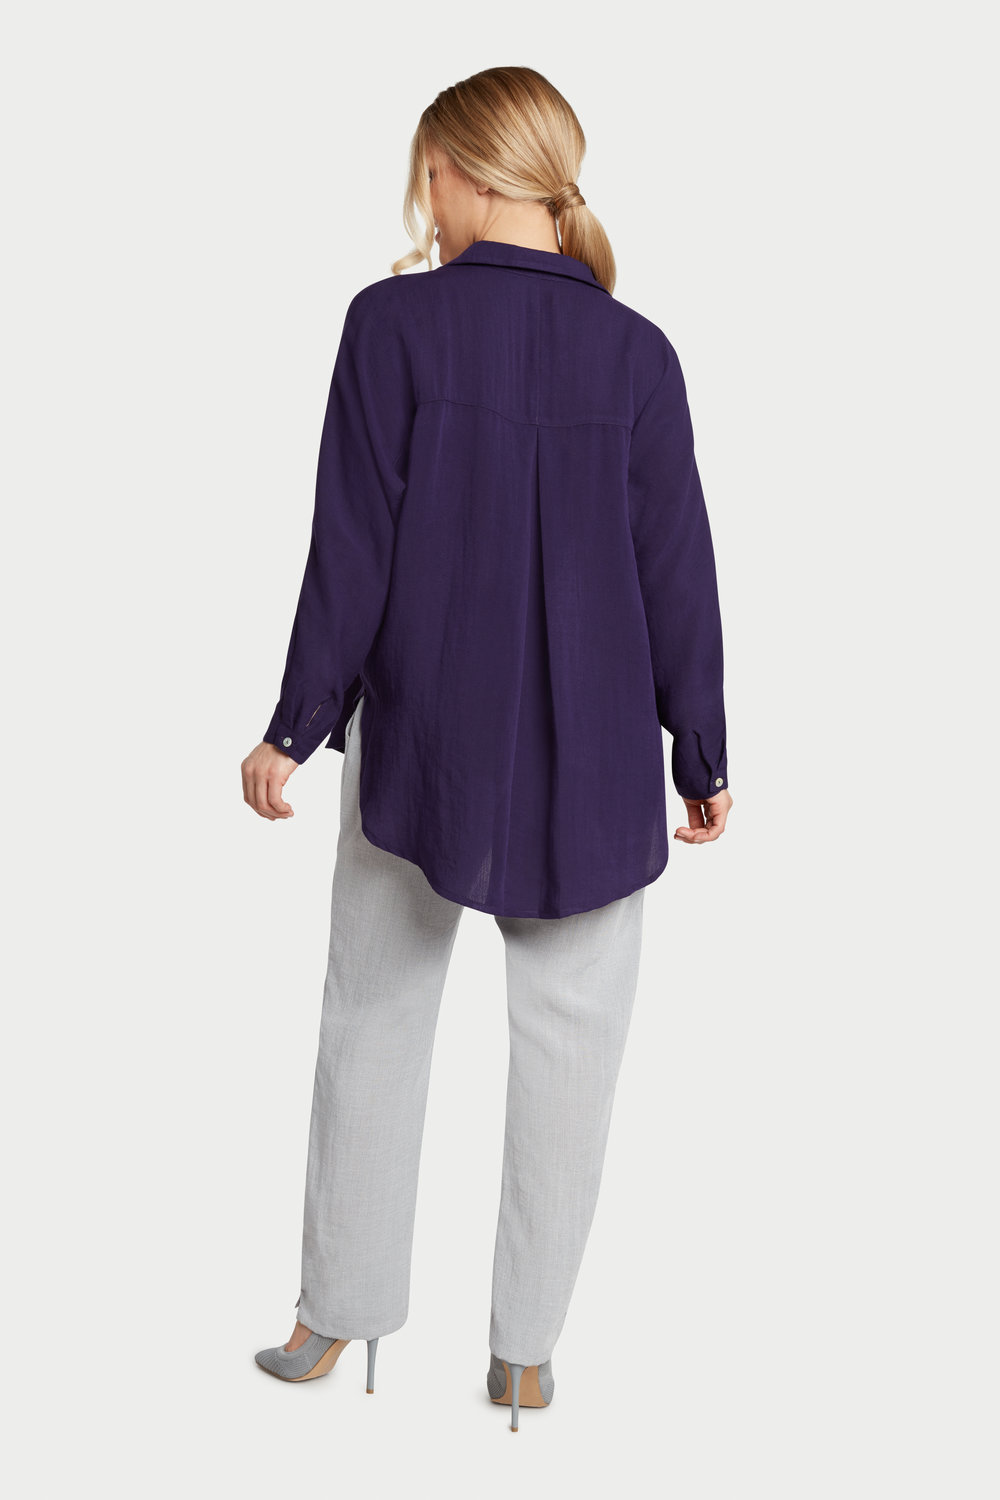 AA235 - Alice Dolman Shirt    Plum -   CL4395